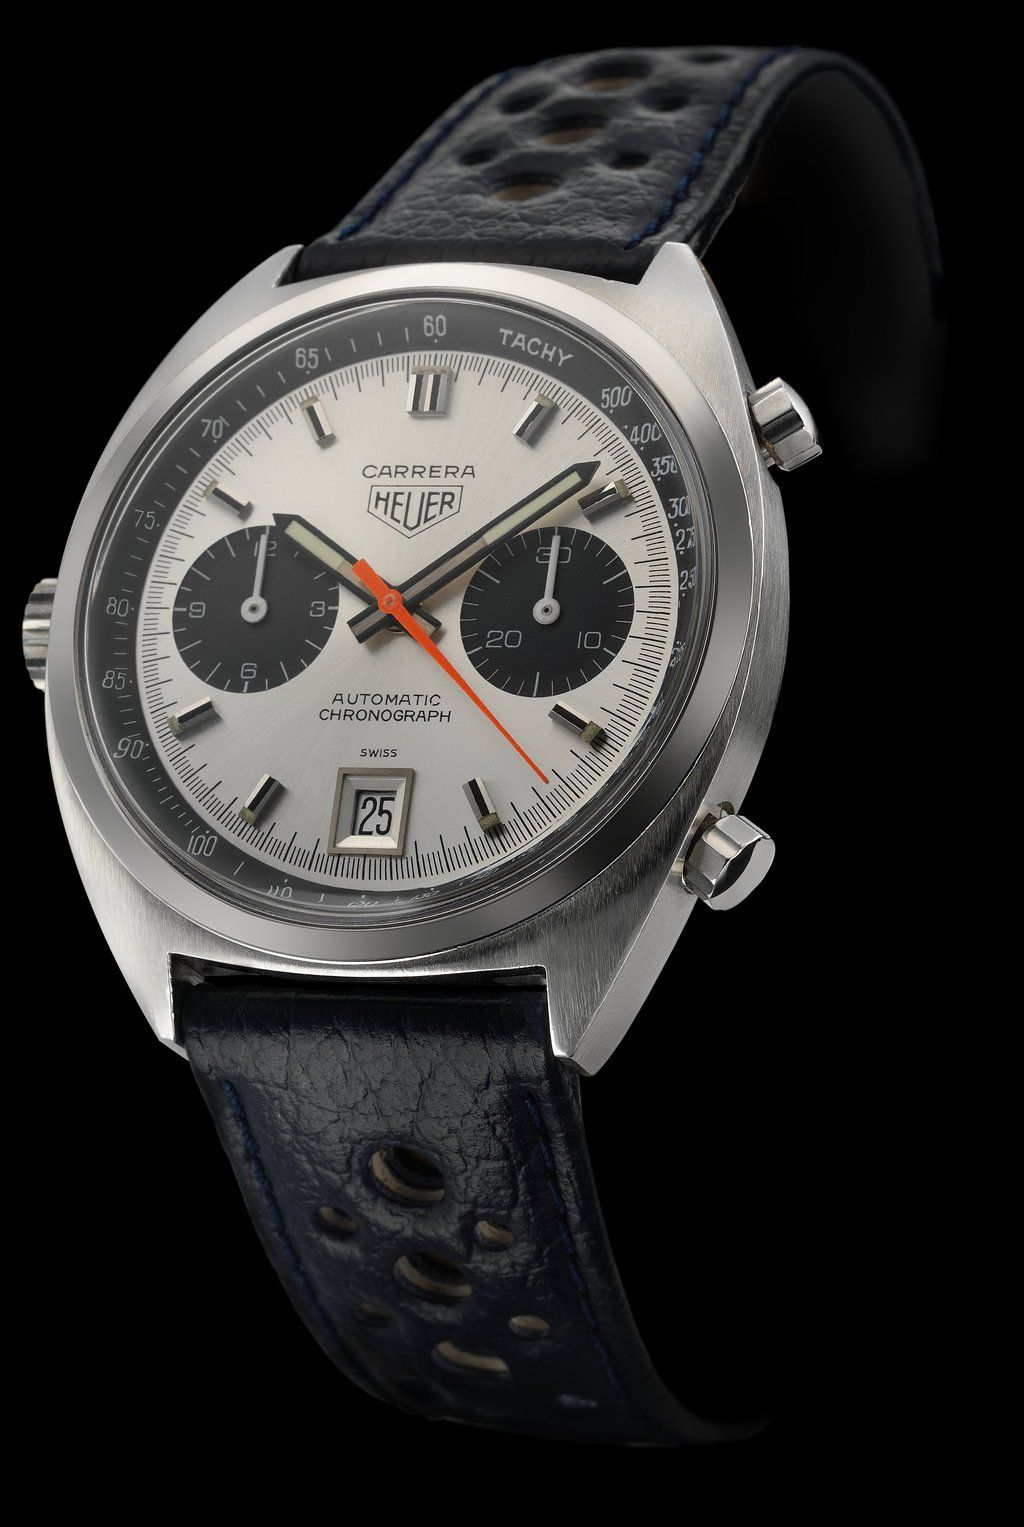 6750d0dc12d3 TAG Heuer Carrera 40th Anniversary Jack Heuer- Review